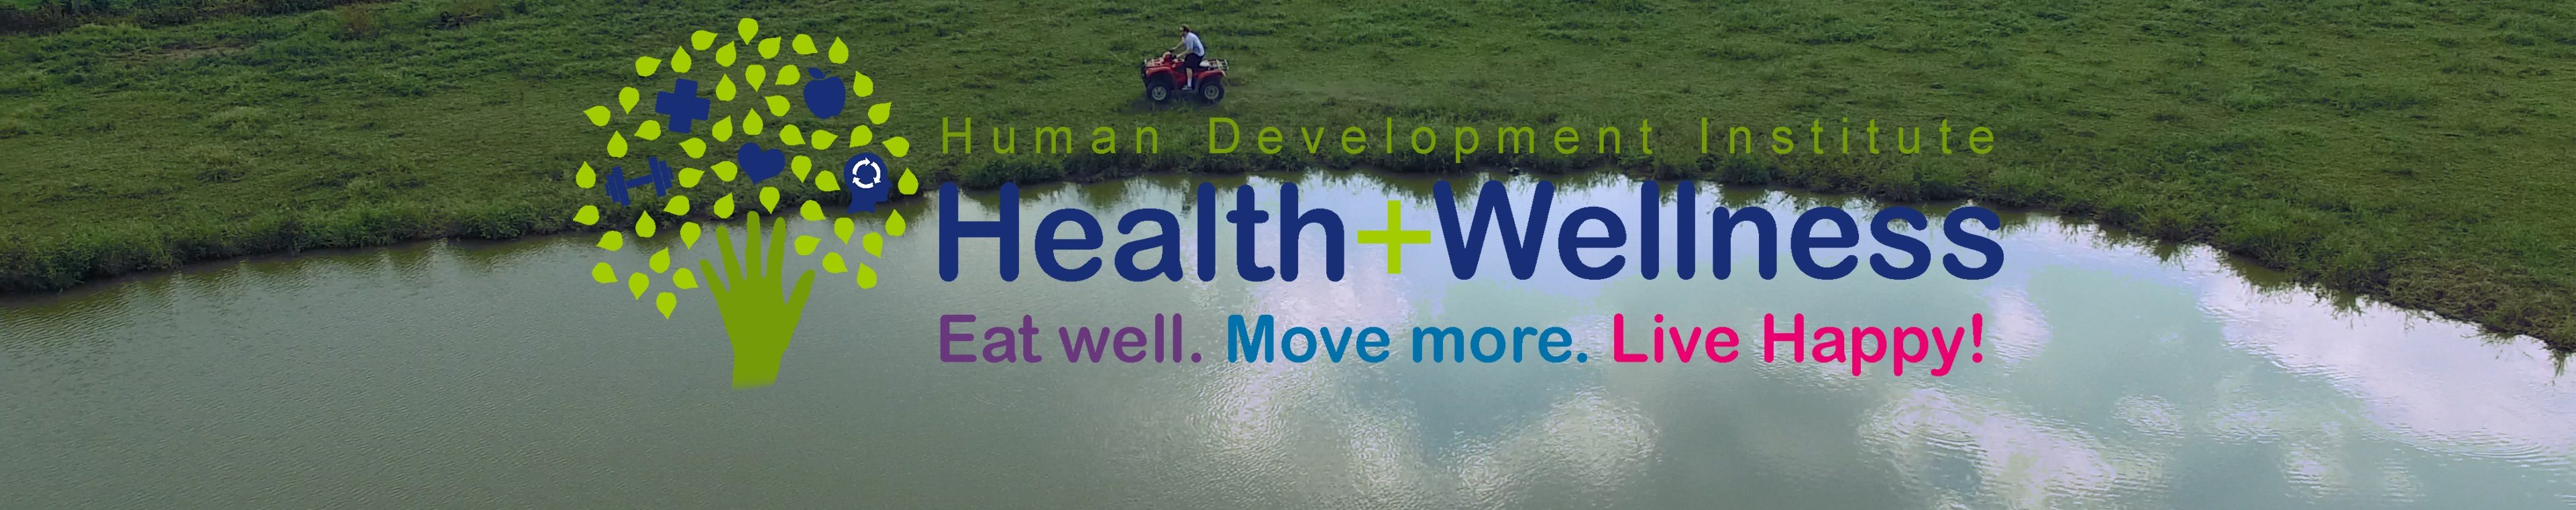 Health and Wellness header image with logo and pond